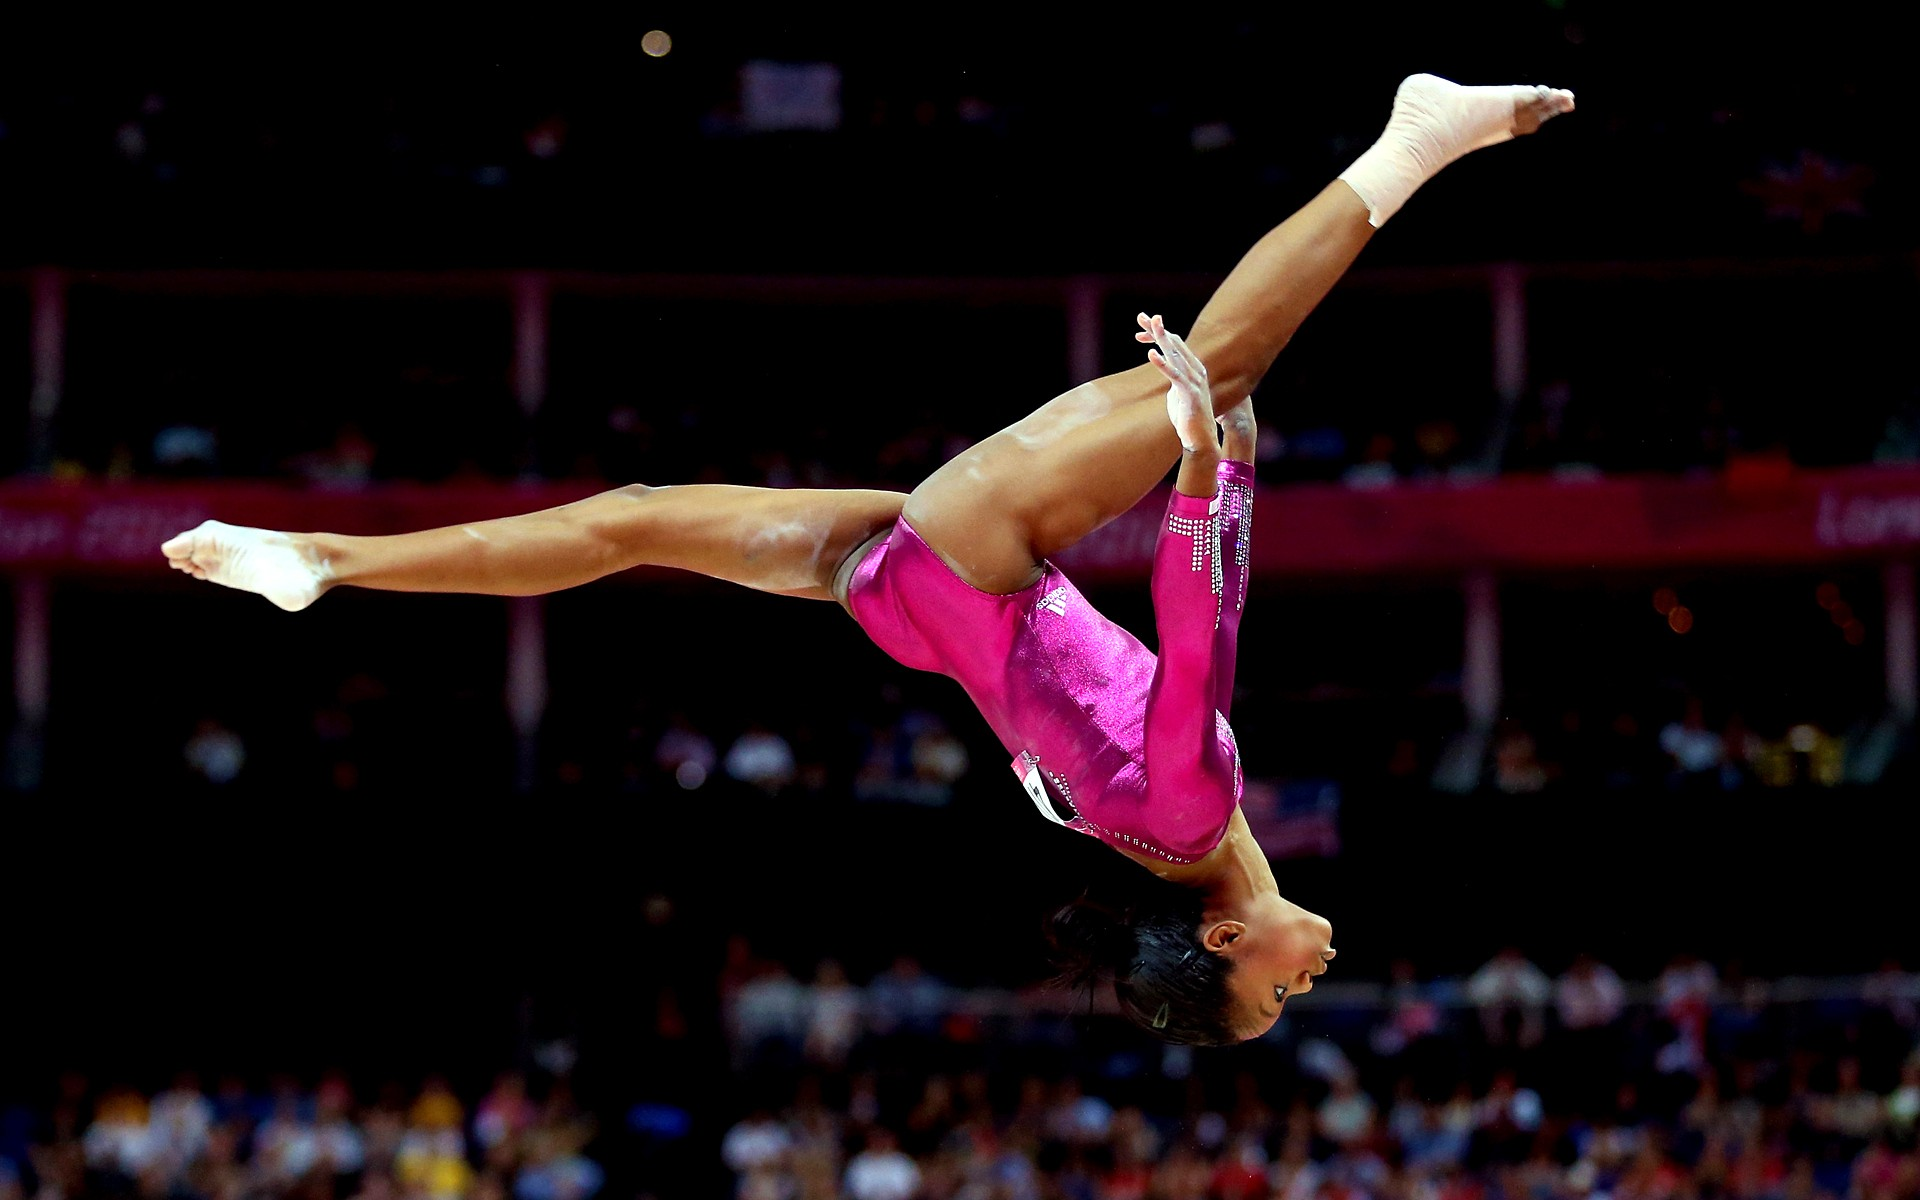 Gymnastics Wallpapers High Quality